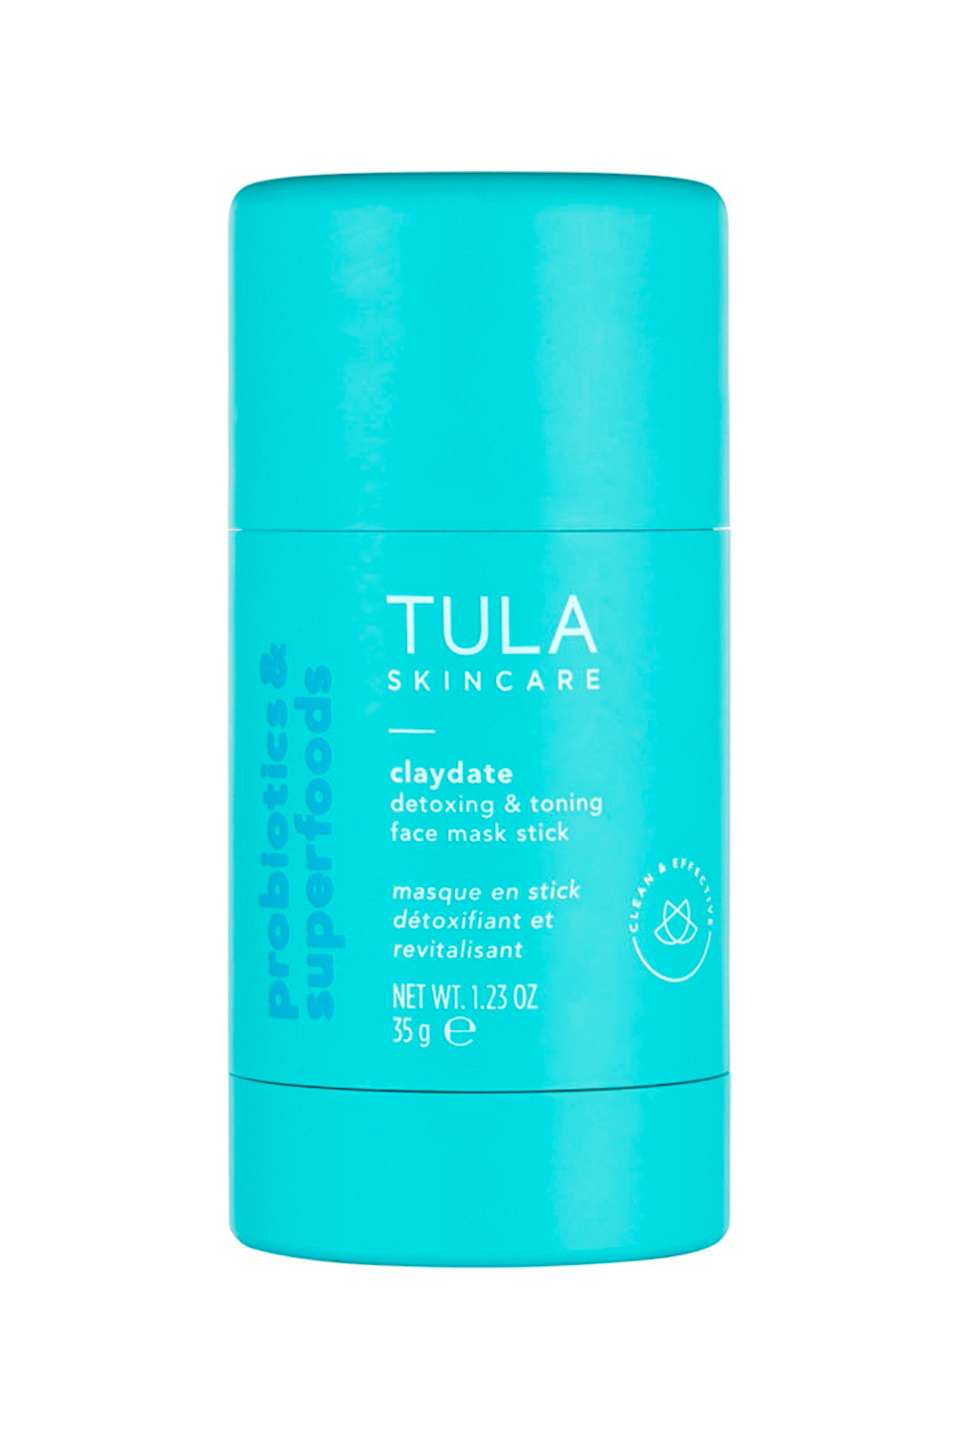 "<p><strong>Tula</strong></p><p>ulta.com</p><p><strong>$34.00</strong></p><p><a href=""https://go.redirectingat.com?id=74968X1596630&url=https%3A%2F%2Fwww.ulta.com%2Fclaydate-detoxing-toning-face-mask-stick%3FproductId%3Dpimprod2022915&sref=https%3A%2F%2Fwww.cosmopolitan.com%2Fstyle-beauty%2Fbeauty%2Fg36176731%2Fbest-clay-face-masks%2F"" rel=""nofollow noopener"" target=""_blank"" data-ylk=""slk:Shop Now"" class=""link rapid-noclick-resp"">Shop Now</a></p><p>As effective as clay face masks are, they're also <em>pretty</em> effing messy. That's where this convenient stick formula comes in handy. <strong>All you do is glide it over clean skin</strong> and it'll leave behind the perfect amount of Mediterranean clay, toning <a href=""https://www.cosmopolitan.com/style-beauty/beauty/a30786071/apple-cider-vinegar-for-hair/"" rel=""nofollow noopener"" target=""_blank"" data-ylk=""slk:apple cider vinegar"" class=""link rapid-noclick-resp"">apple cider vinegar</a>, and oil-minimizing willow bark —no mess included.</p>"